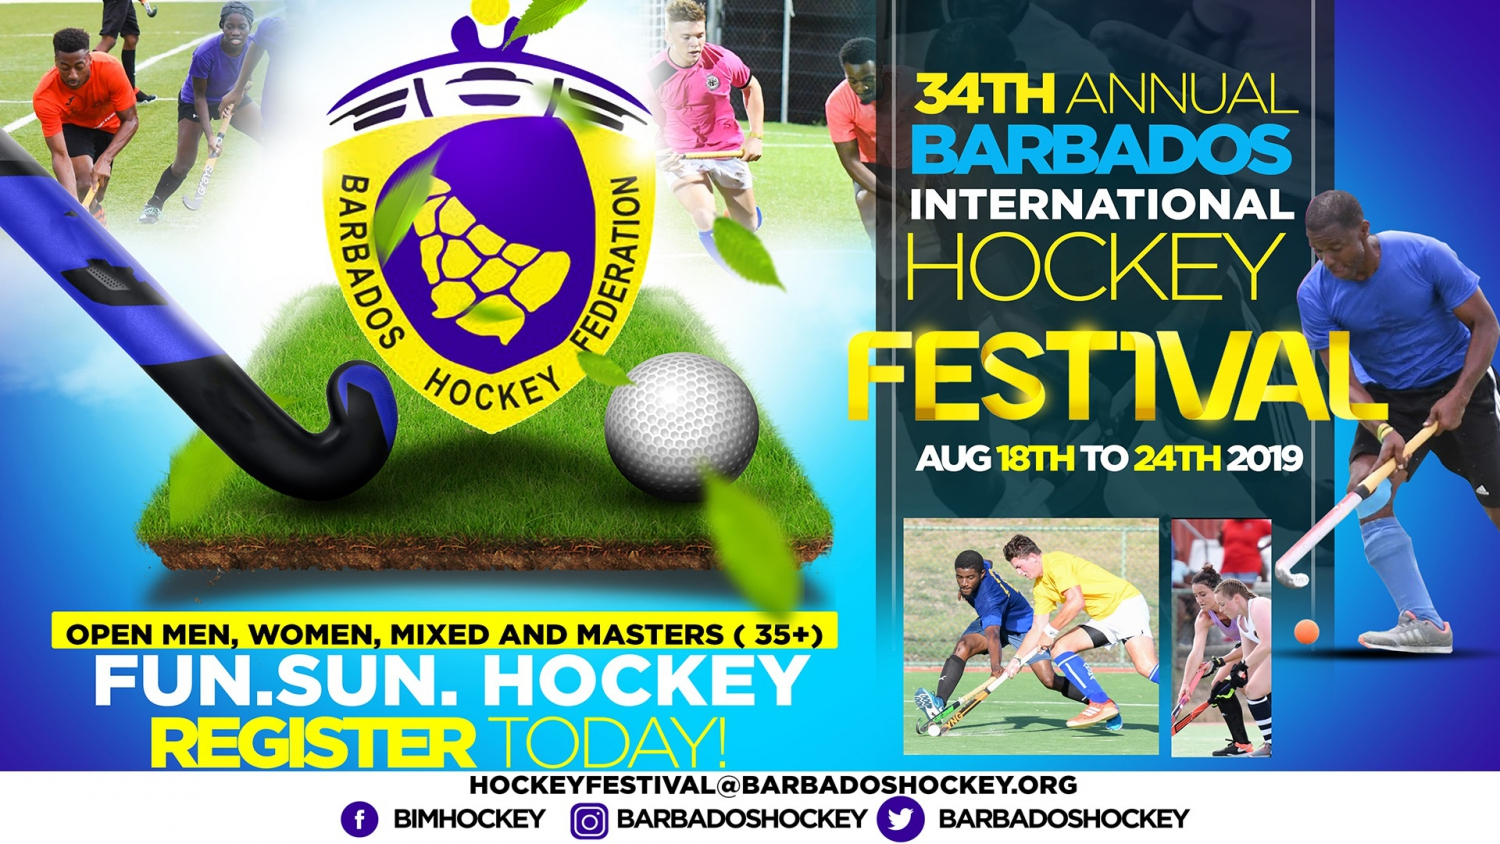 The 34th Annual Barbados International Hockey Festival 2019